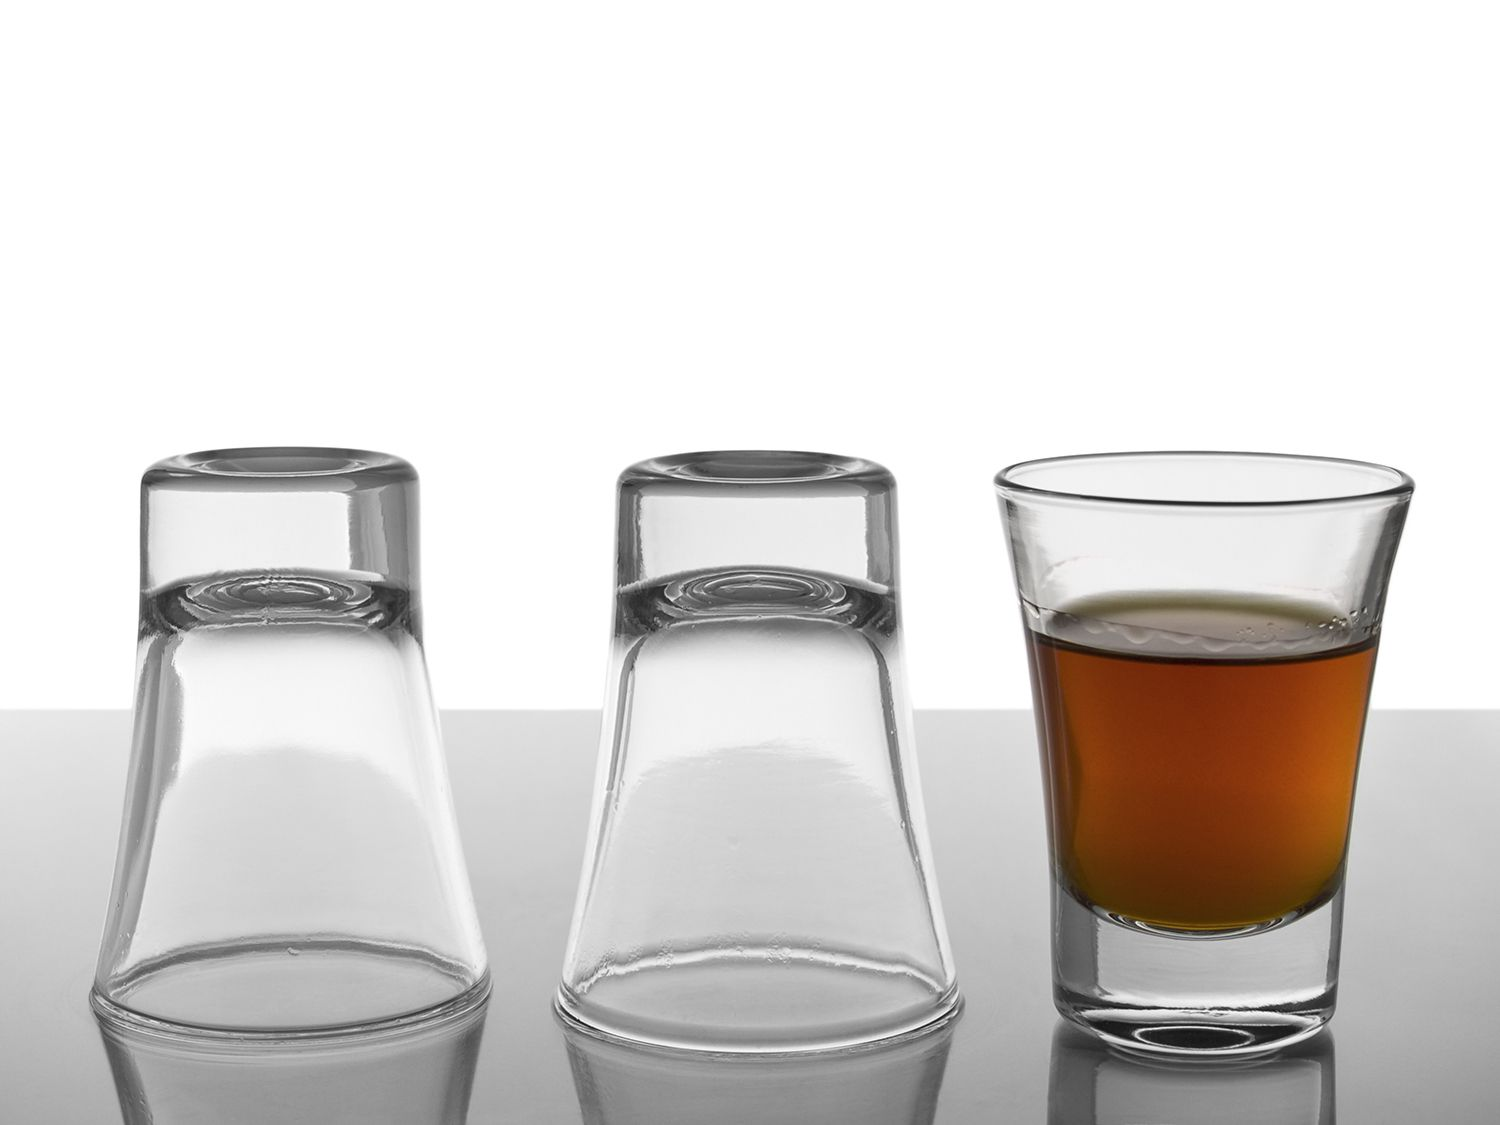 recipe: how many grams of sugar in a shot of rumplemintz [27]